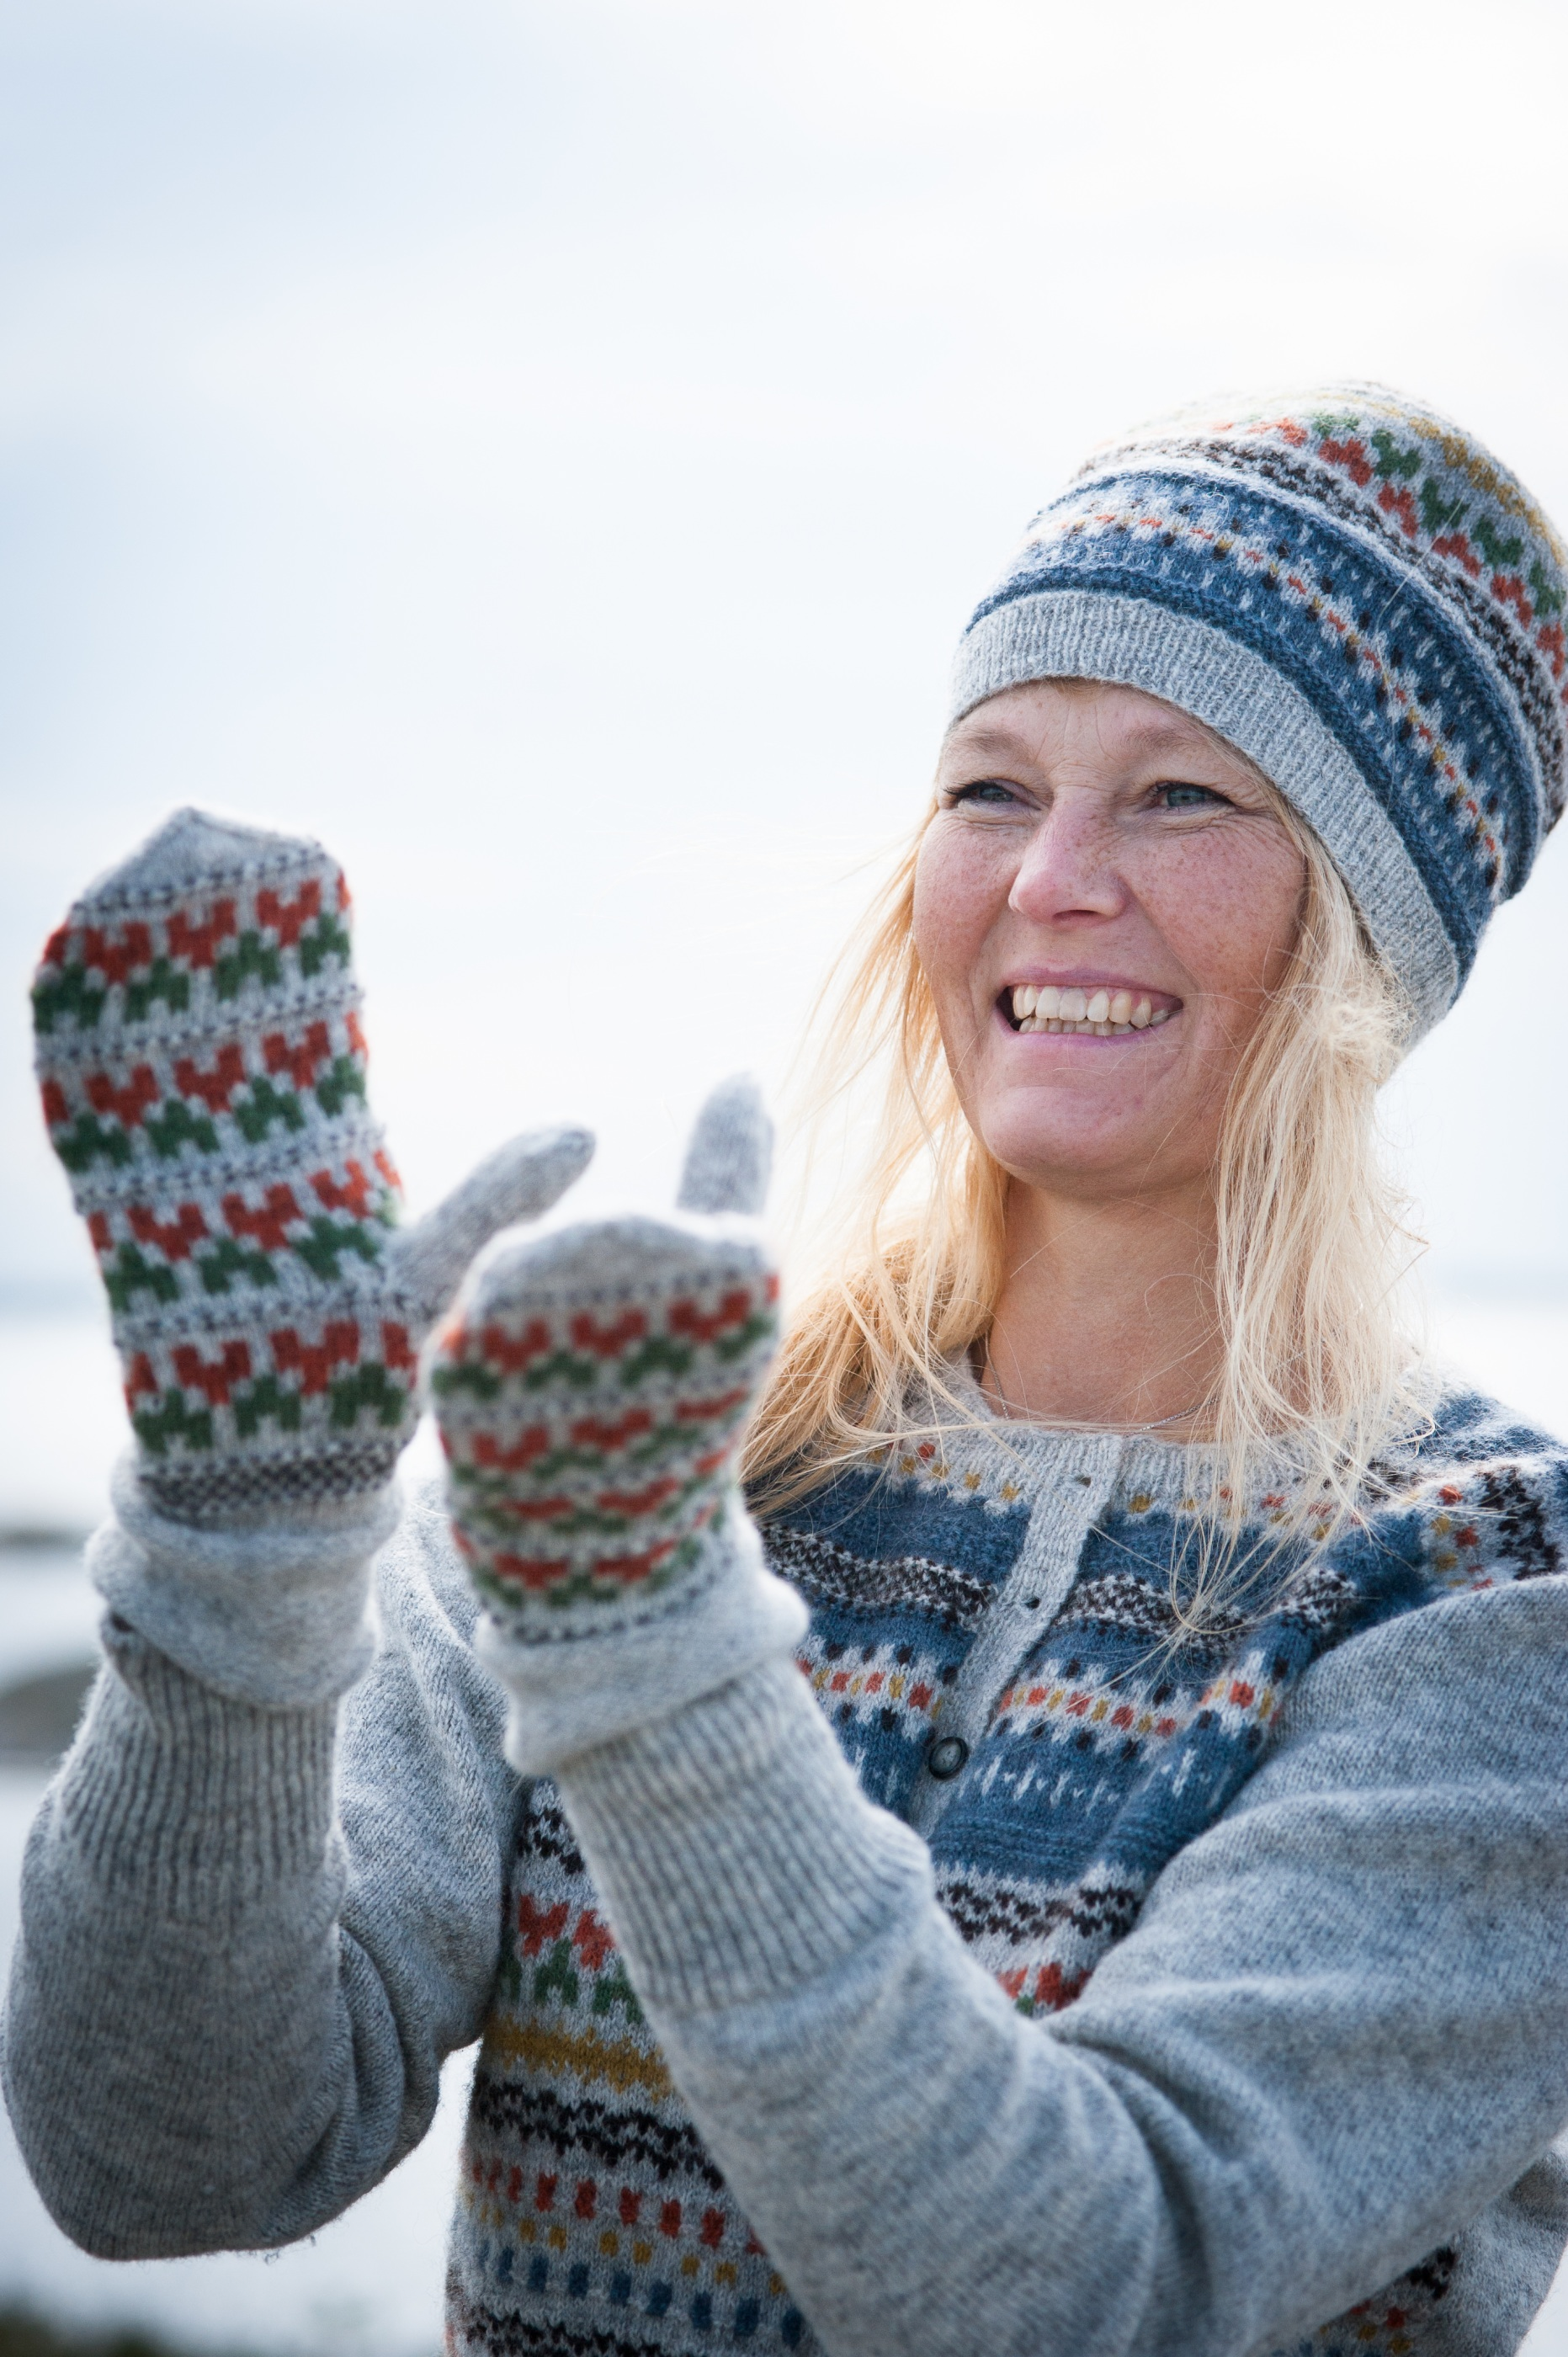 Blå Randen pullover cardigan, hat and mittens